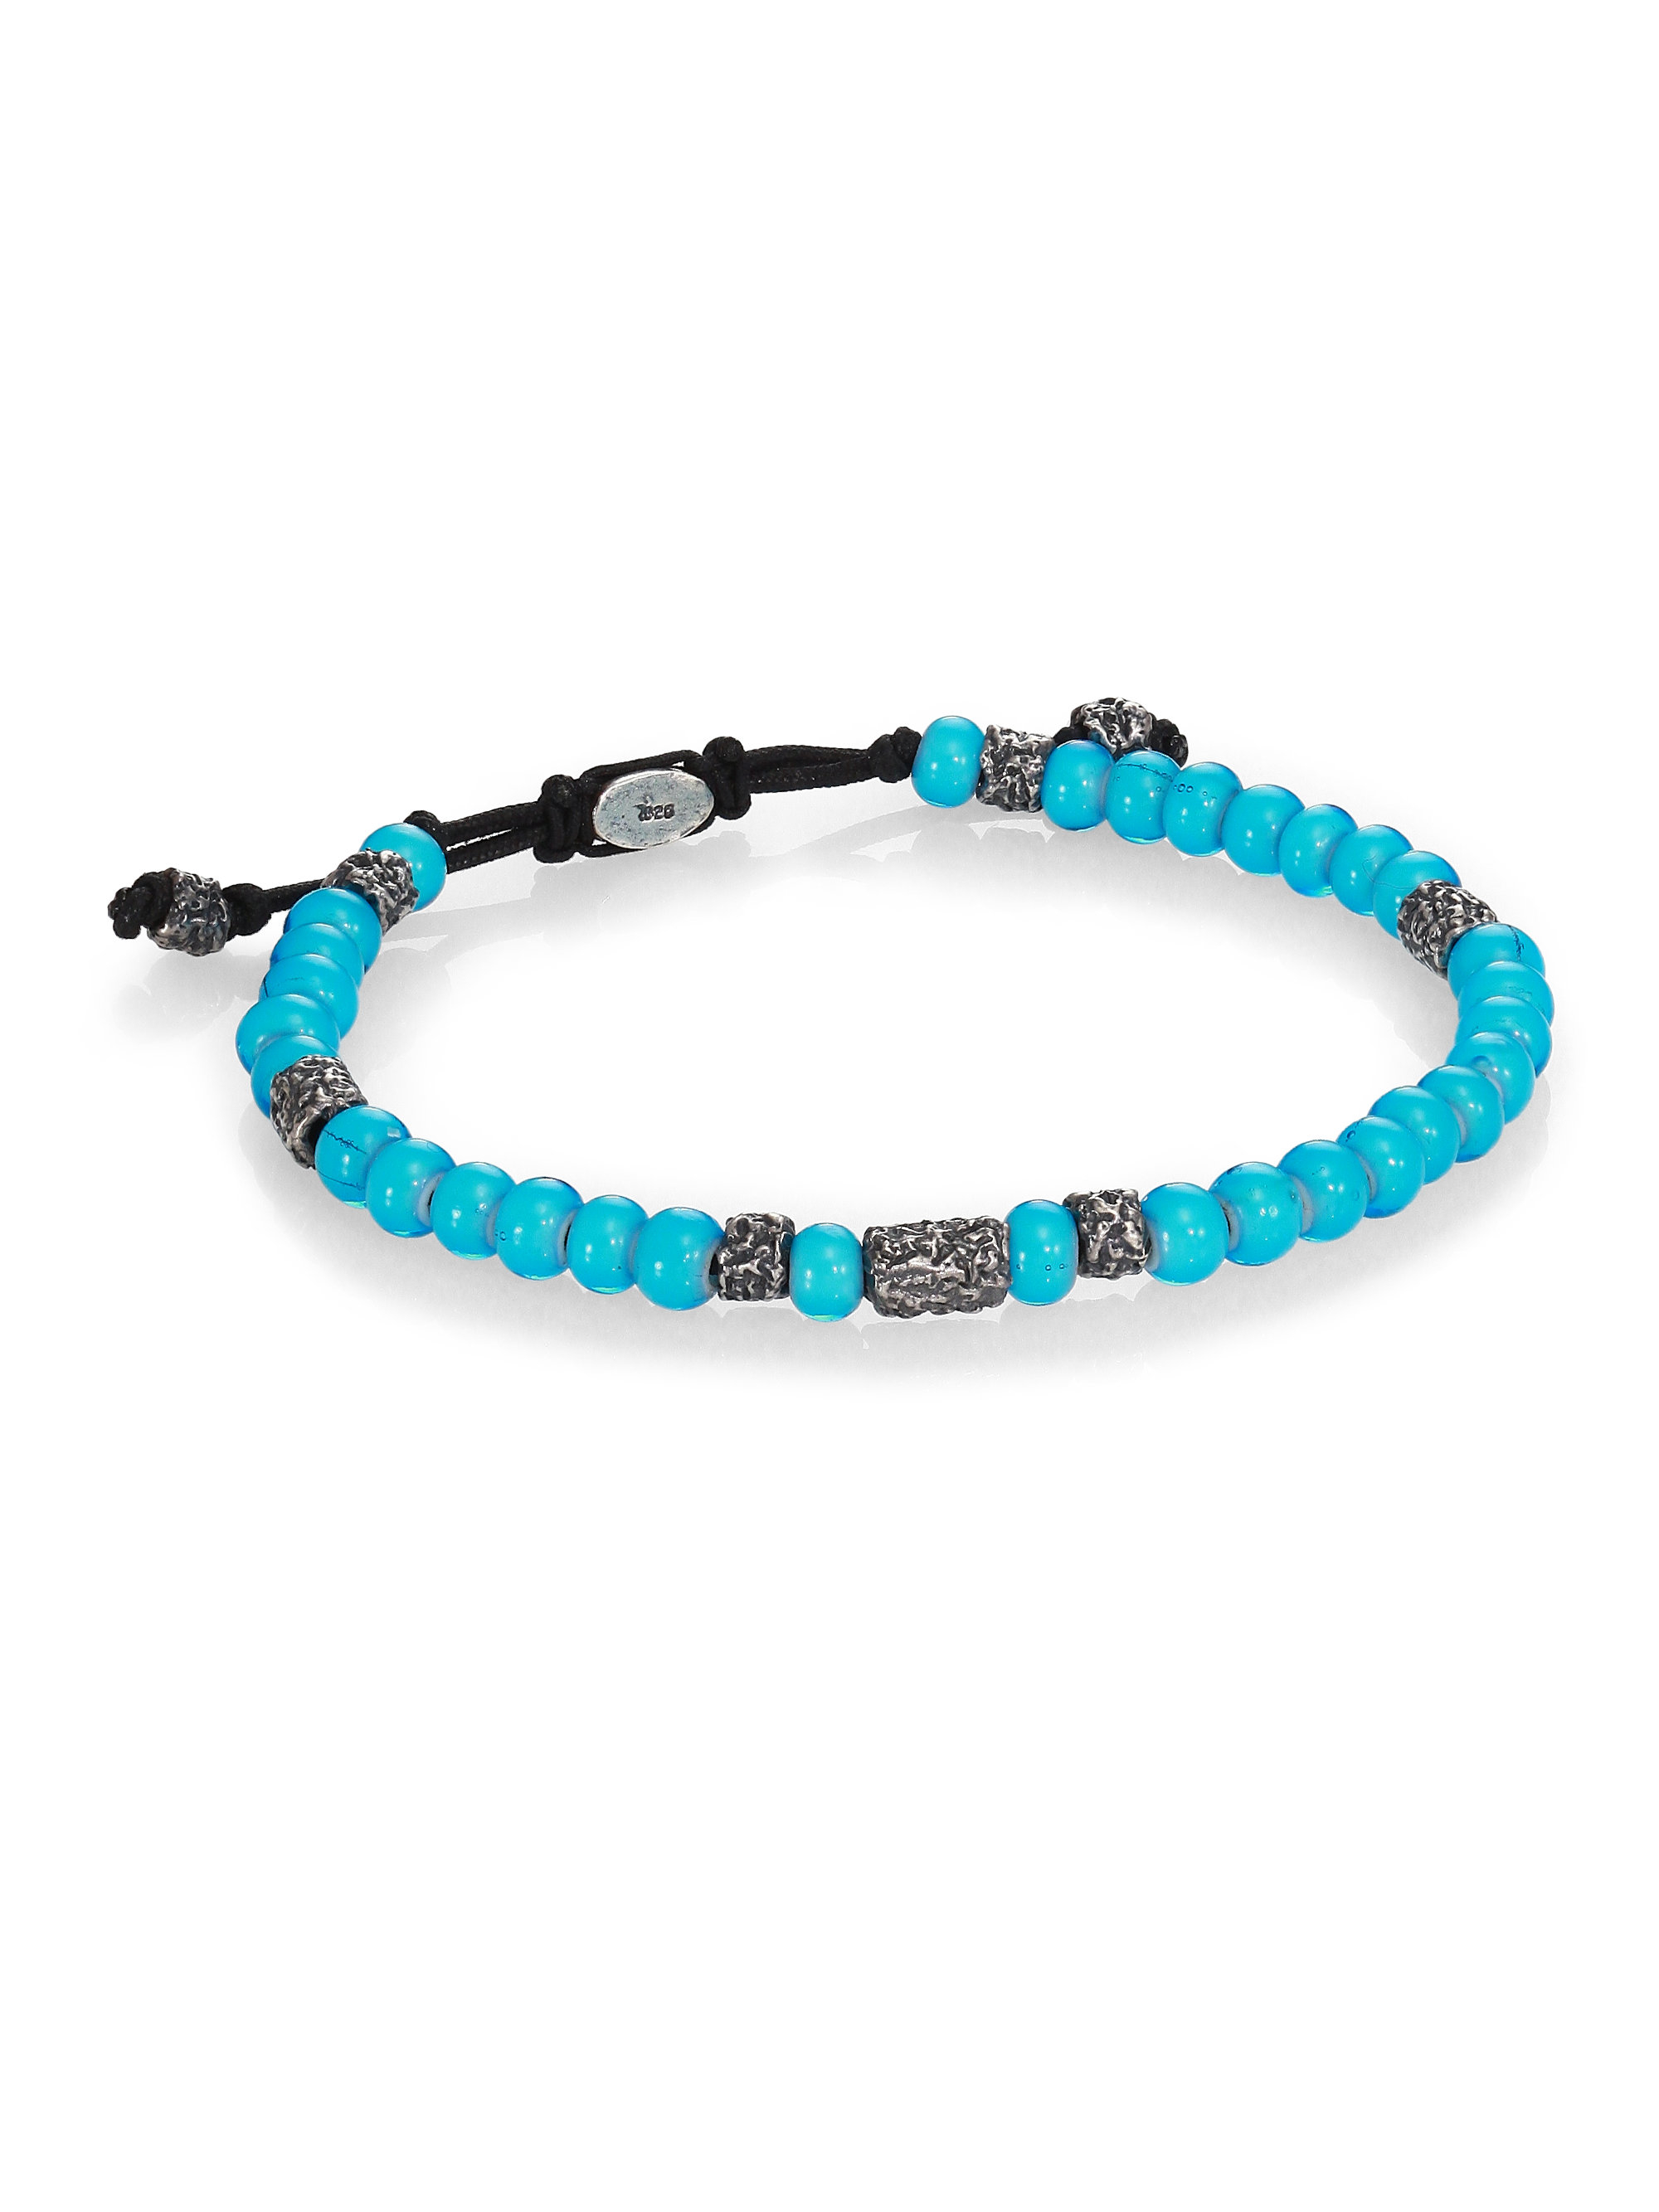 M. cohen African Beads Stacked Bracelet in Blue (TURQUOISE ...